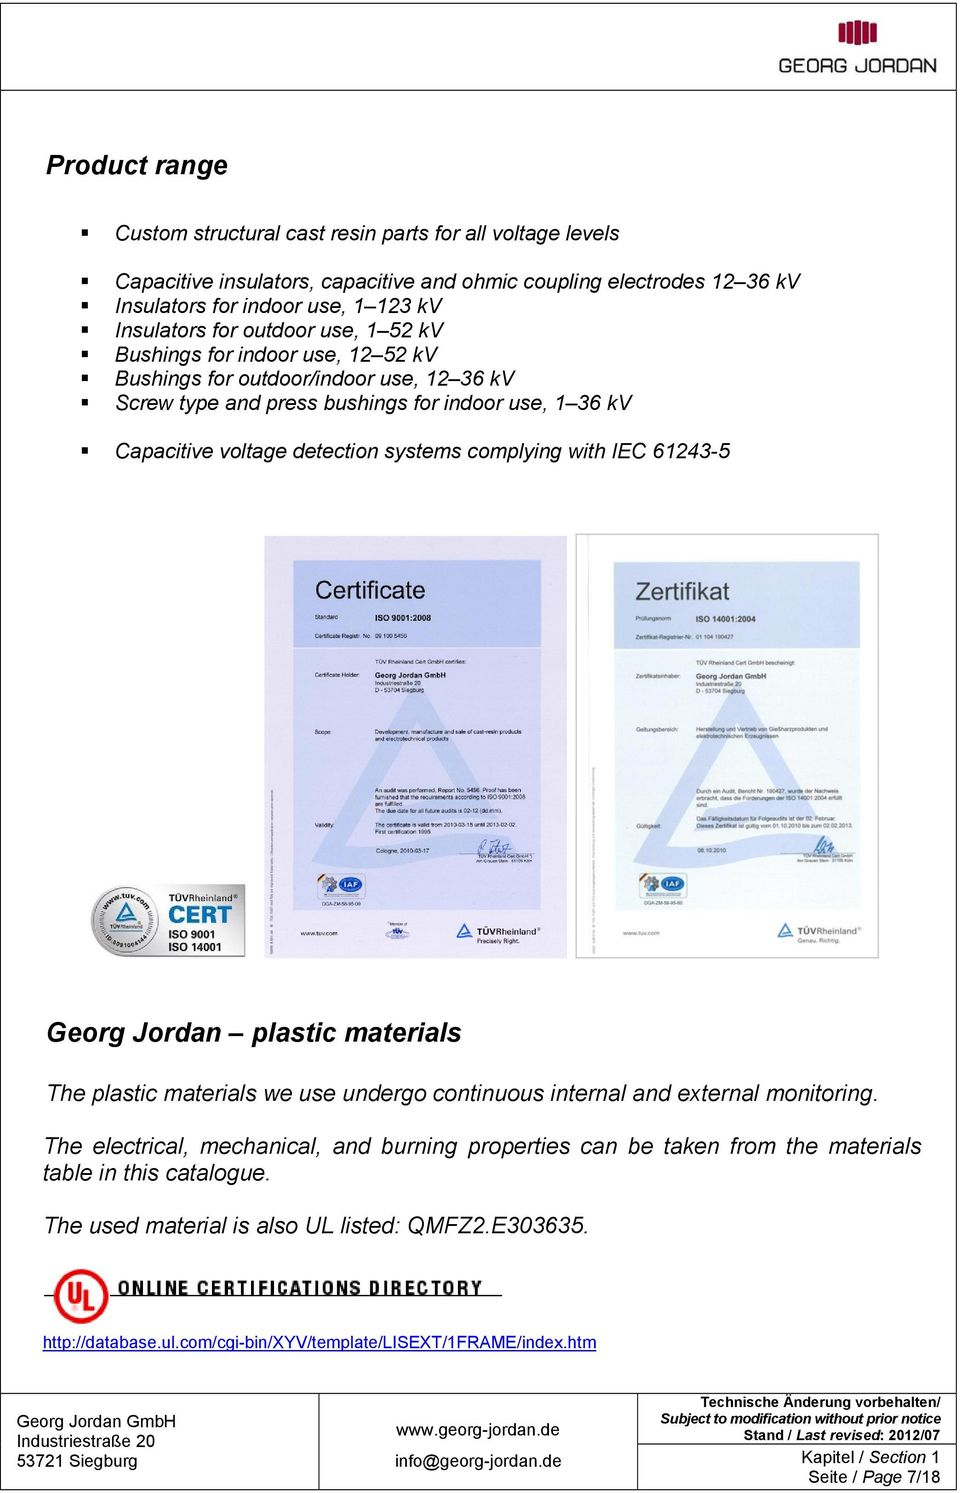 Georg Jordan plastic materials The plastic materials we use undergo continuous internal and external monitoring.